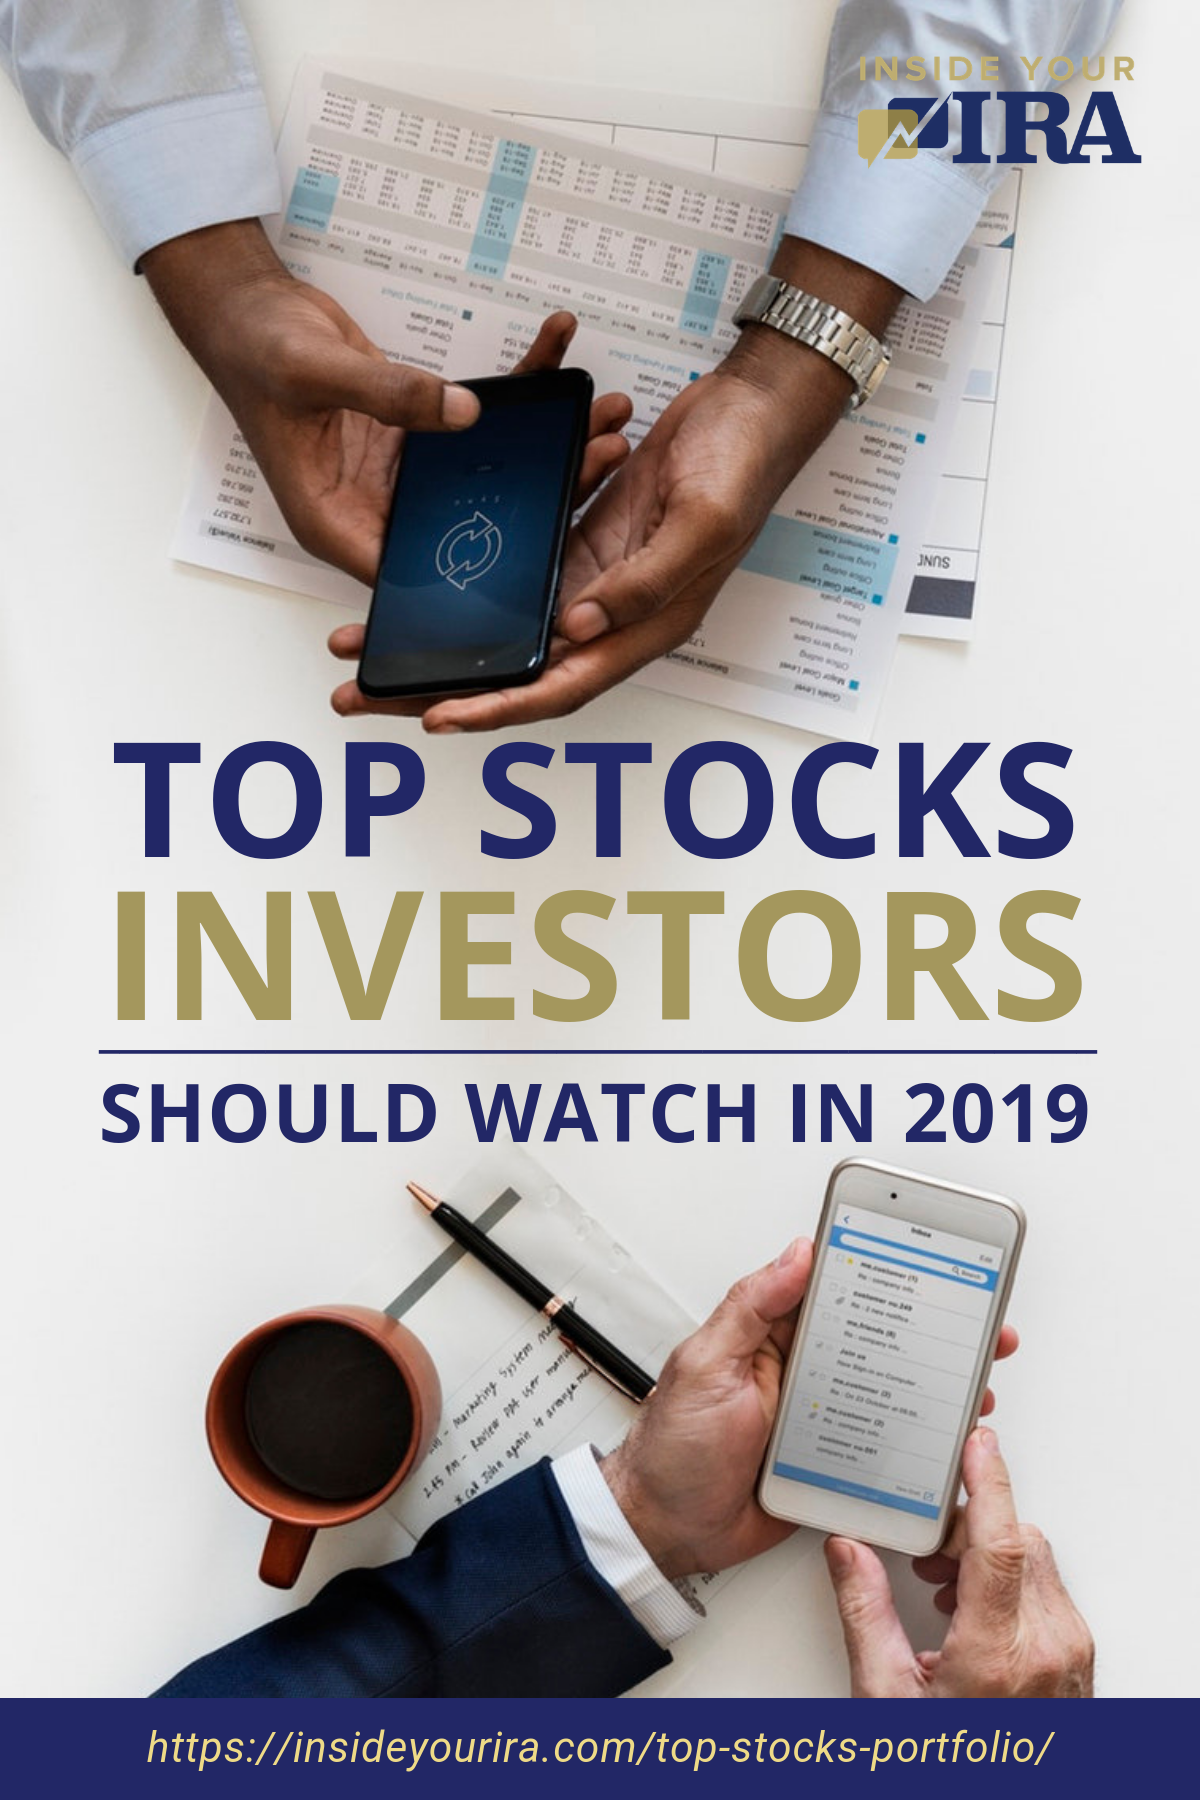 Top Stocks Investors Should Watch In 2019 | Inside Your IRA